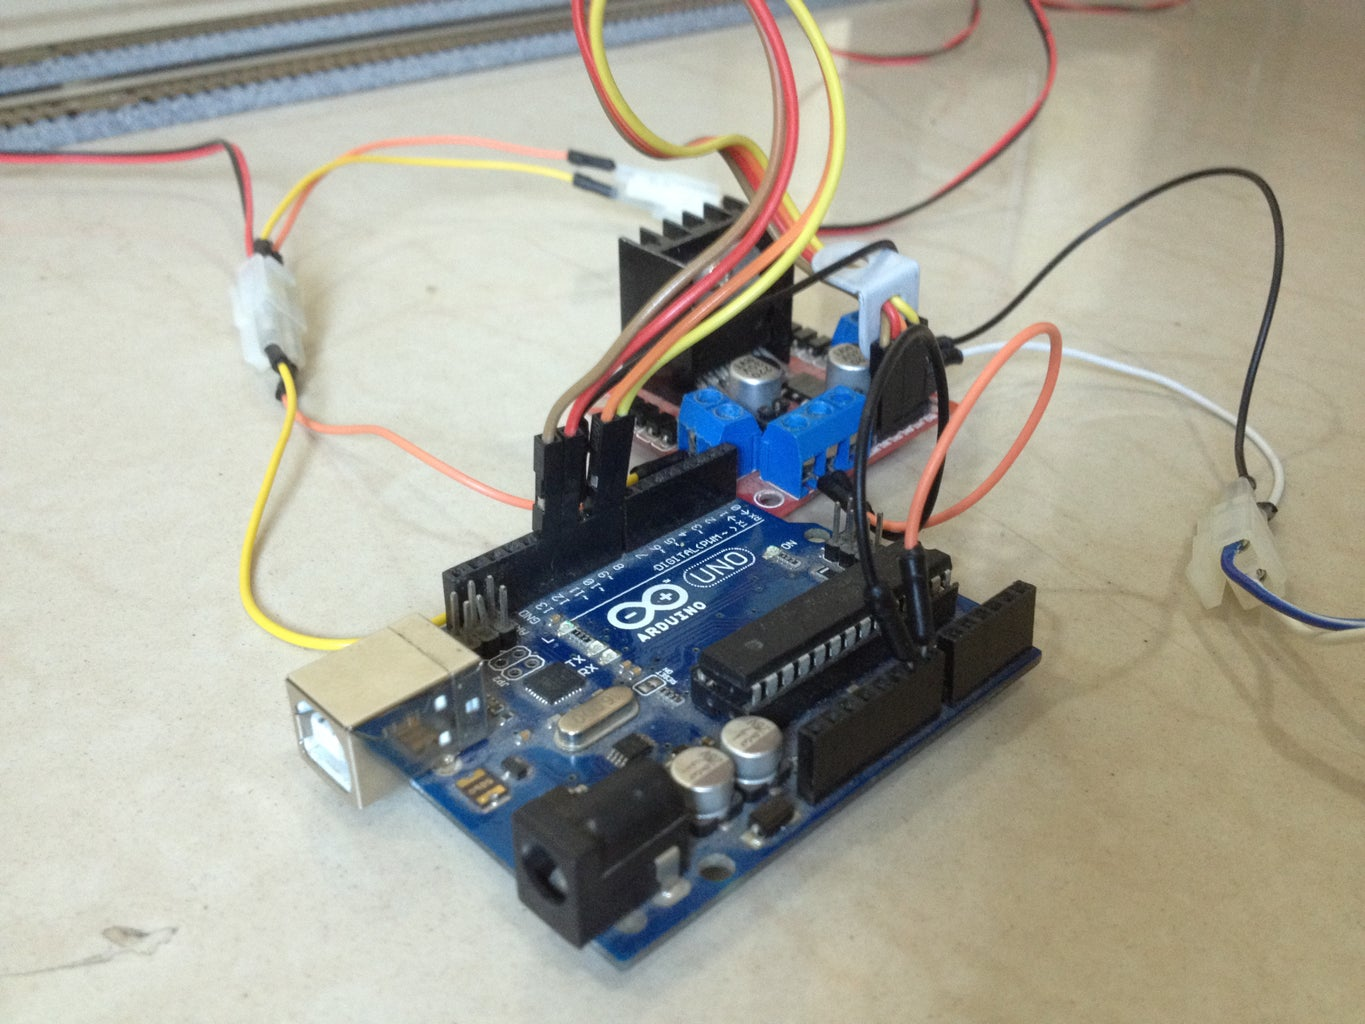 Connect the Motor Driver to the Arduino Board